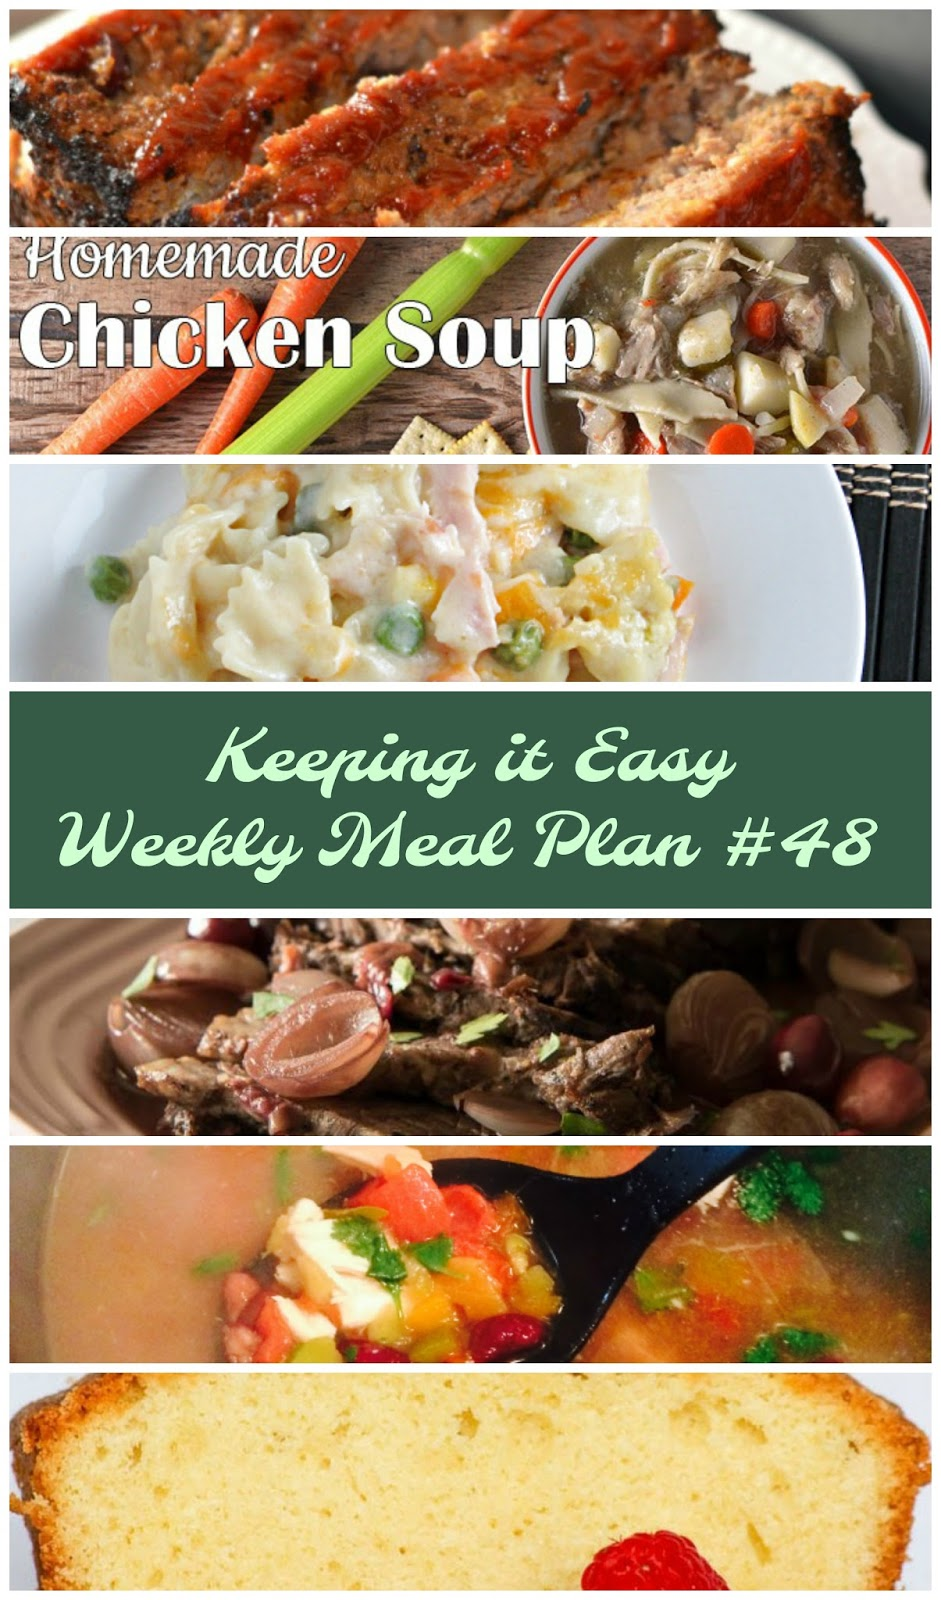 Easy Weekly Meal Plan #48 from My Fearless Kitchen. This week's meal plan includes Spinach & Tomato Veggie Omelet, Cranberry Meatloaf, Easy Homemade Chicken Soup, Creamy Turkey & Noodles, Cranberry Orange-Braised Instant Pot Beef Brisket, Green Chili & Chicken Soup, and Butter Pound Cake.